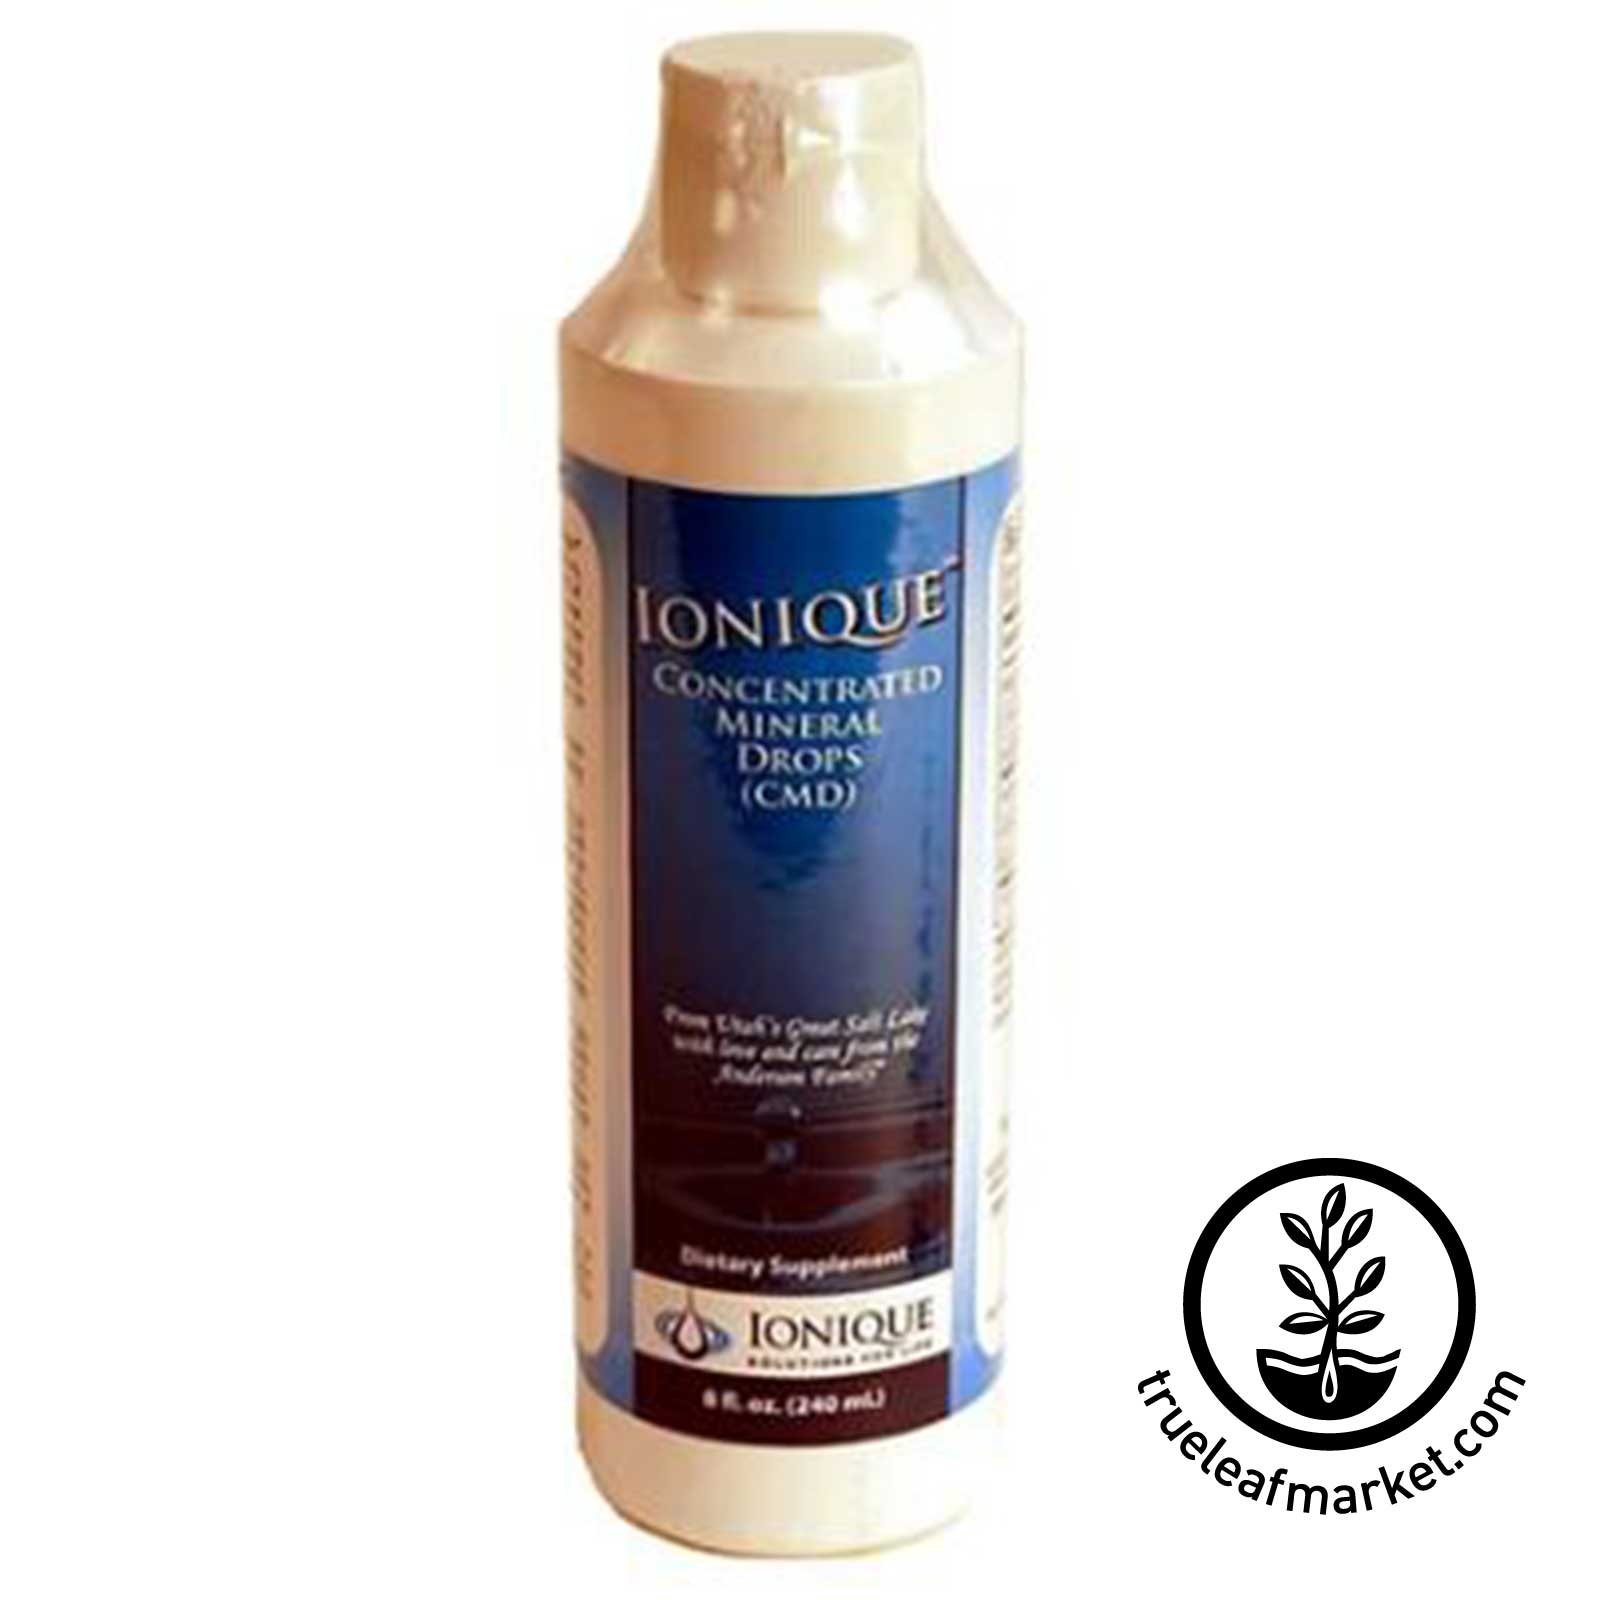 Ionique Concentrated Mineral Drops & Liquid Fertilizer